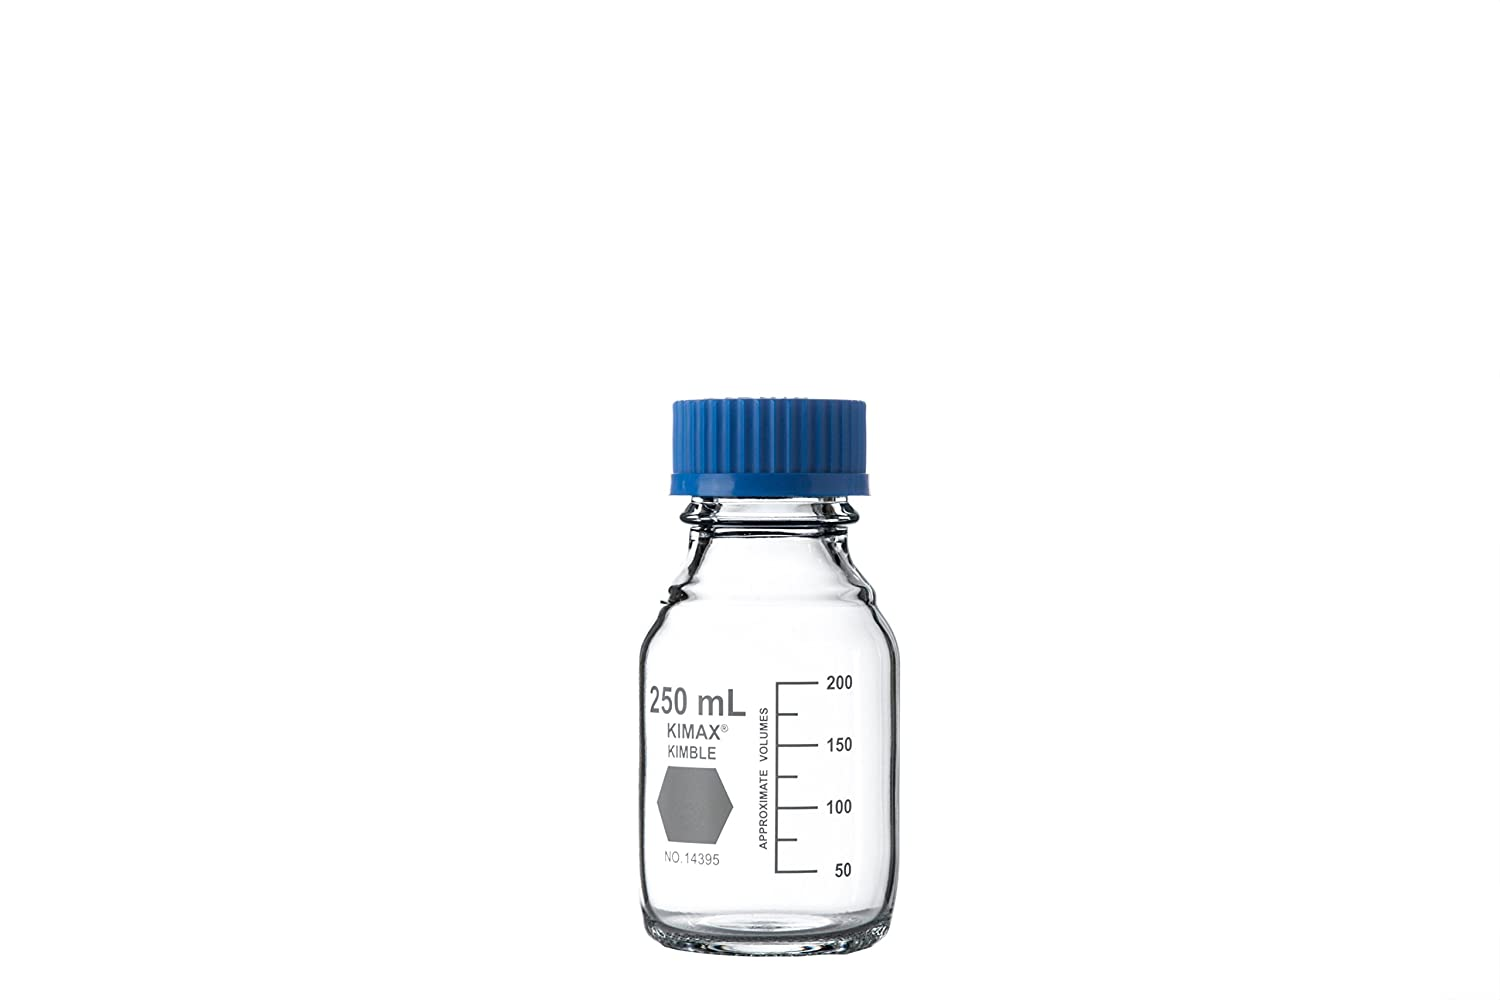 Neolab 1  Laboratory Bottles, Kimax GL45  Boro 3.3  Screw Cap, Blue, 100  ml Kimax GL45 Boro 3.3 Screw Cap 100 ml 1-0195